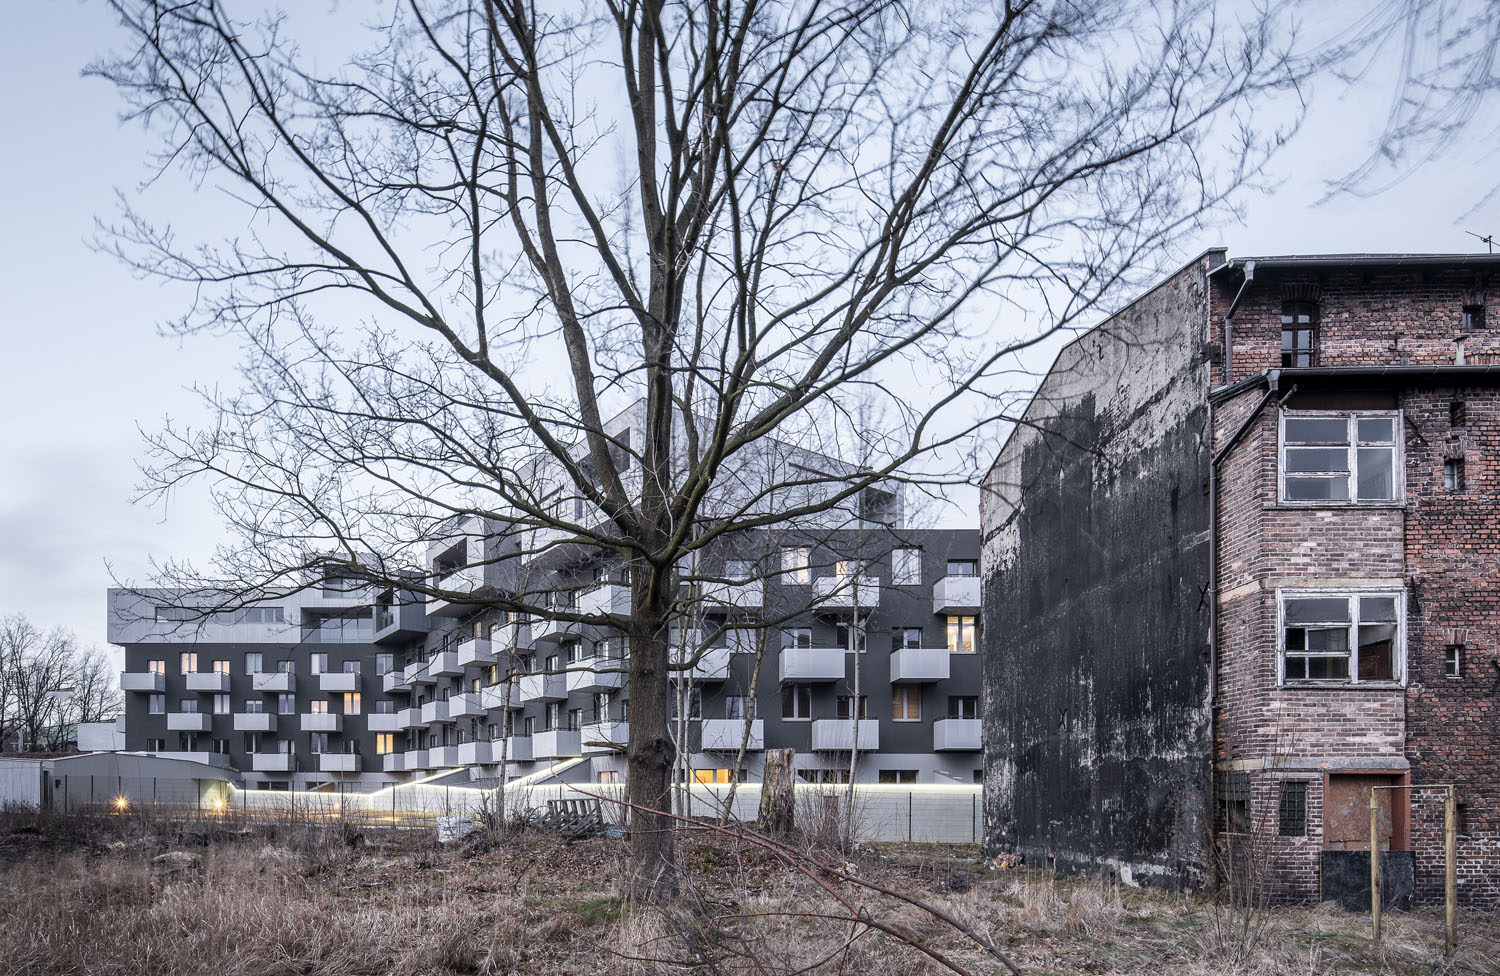 Sometimes, the references to context are not obvious. The black Baildomb elevations refer to the tarred gables of nearby buildings Juliusz Sokolowski